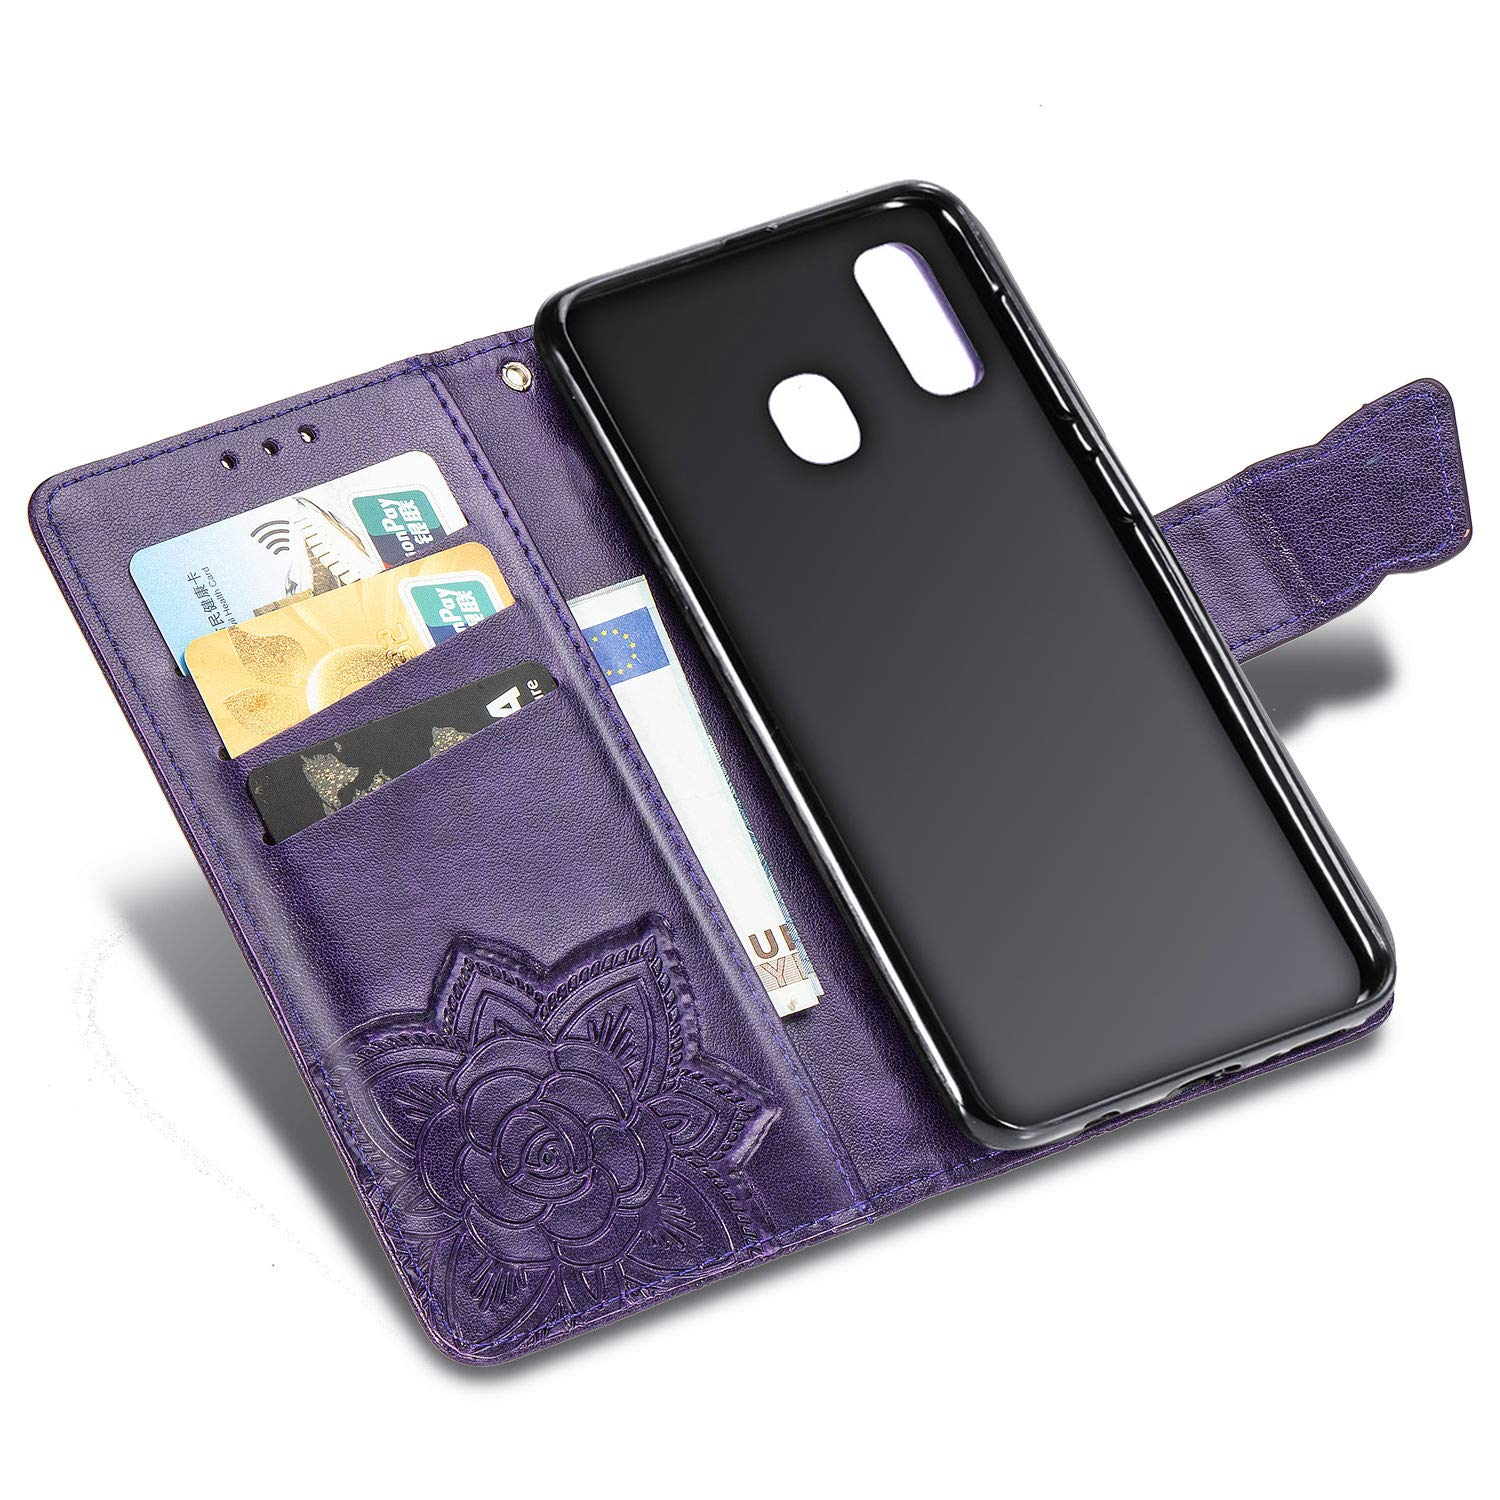 WIWJ Compatible with Samsung Galaxy A40 Case,Flower Butterfly 3D Embossed PU Leather Case with Card Holder Wallet Cover Flip Case Cover for Samsung Galaxy A40-Light Purple